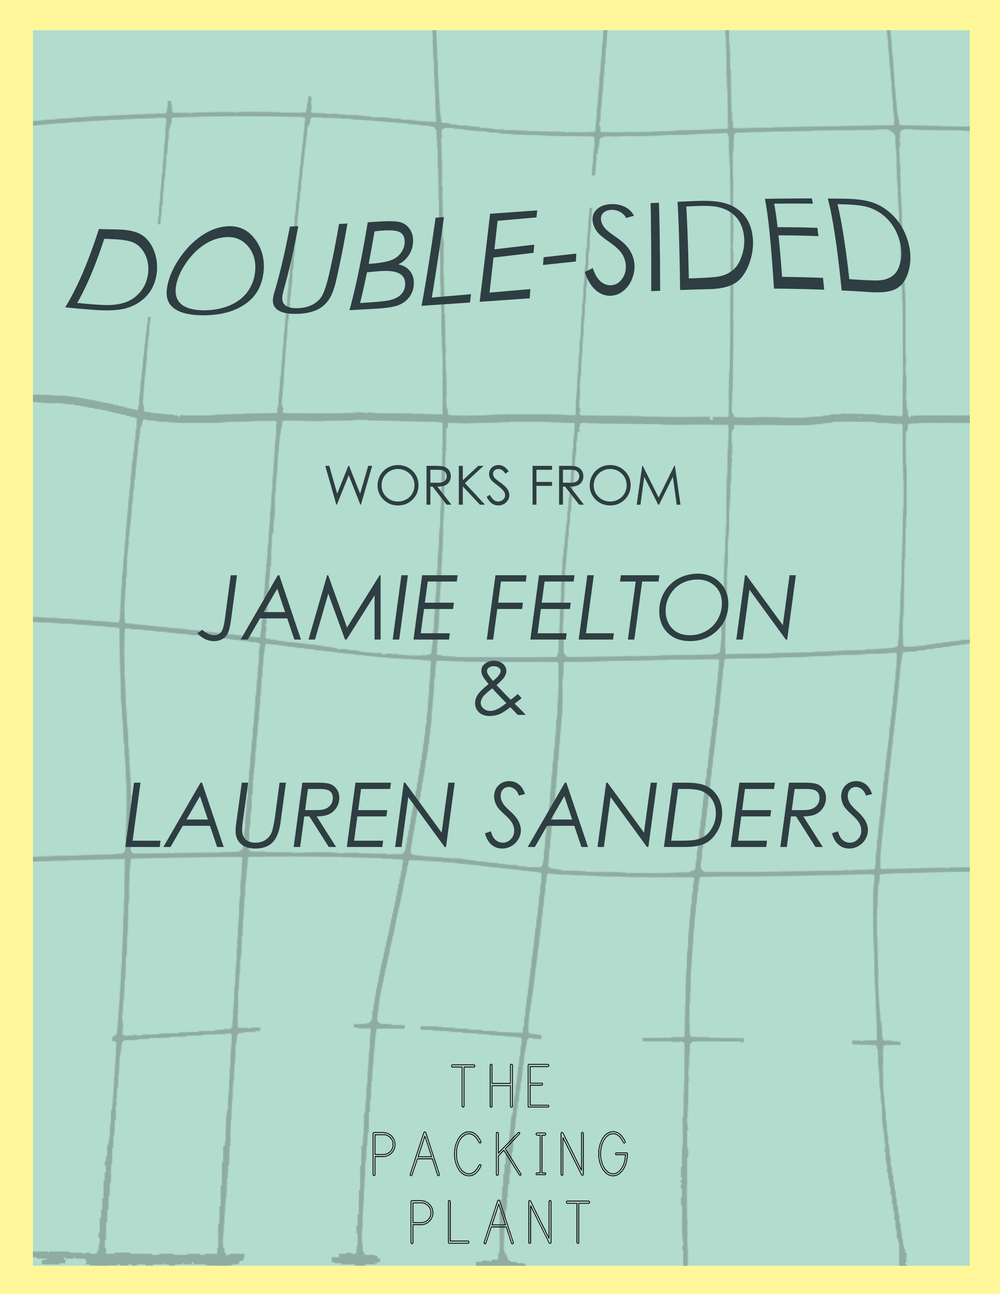 DOUBLE-SIDED   Jamie Felton & Lauren Sanders  March 2015